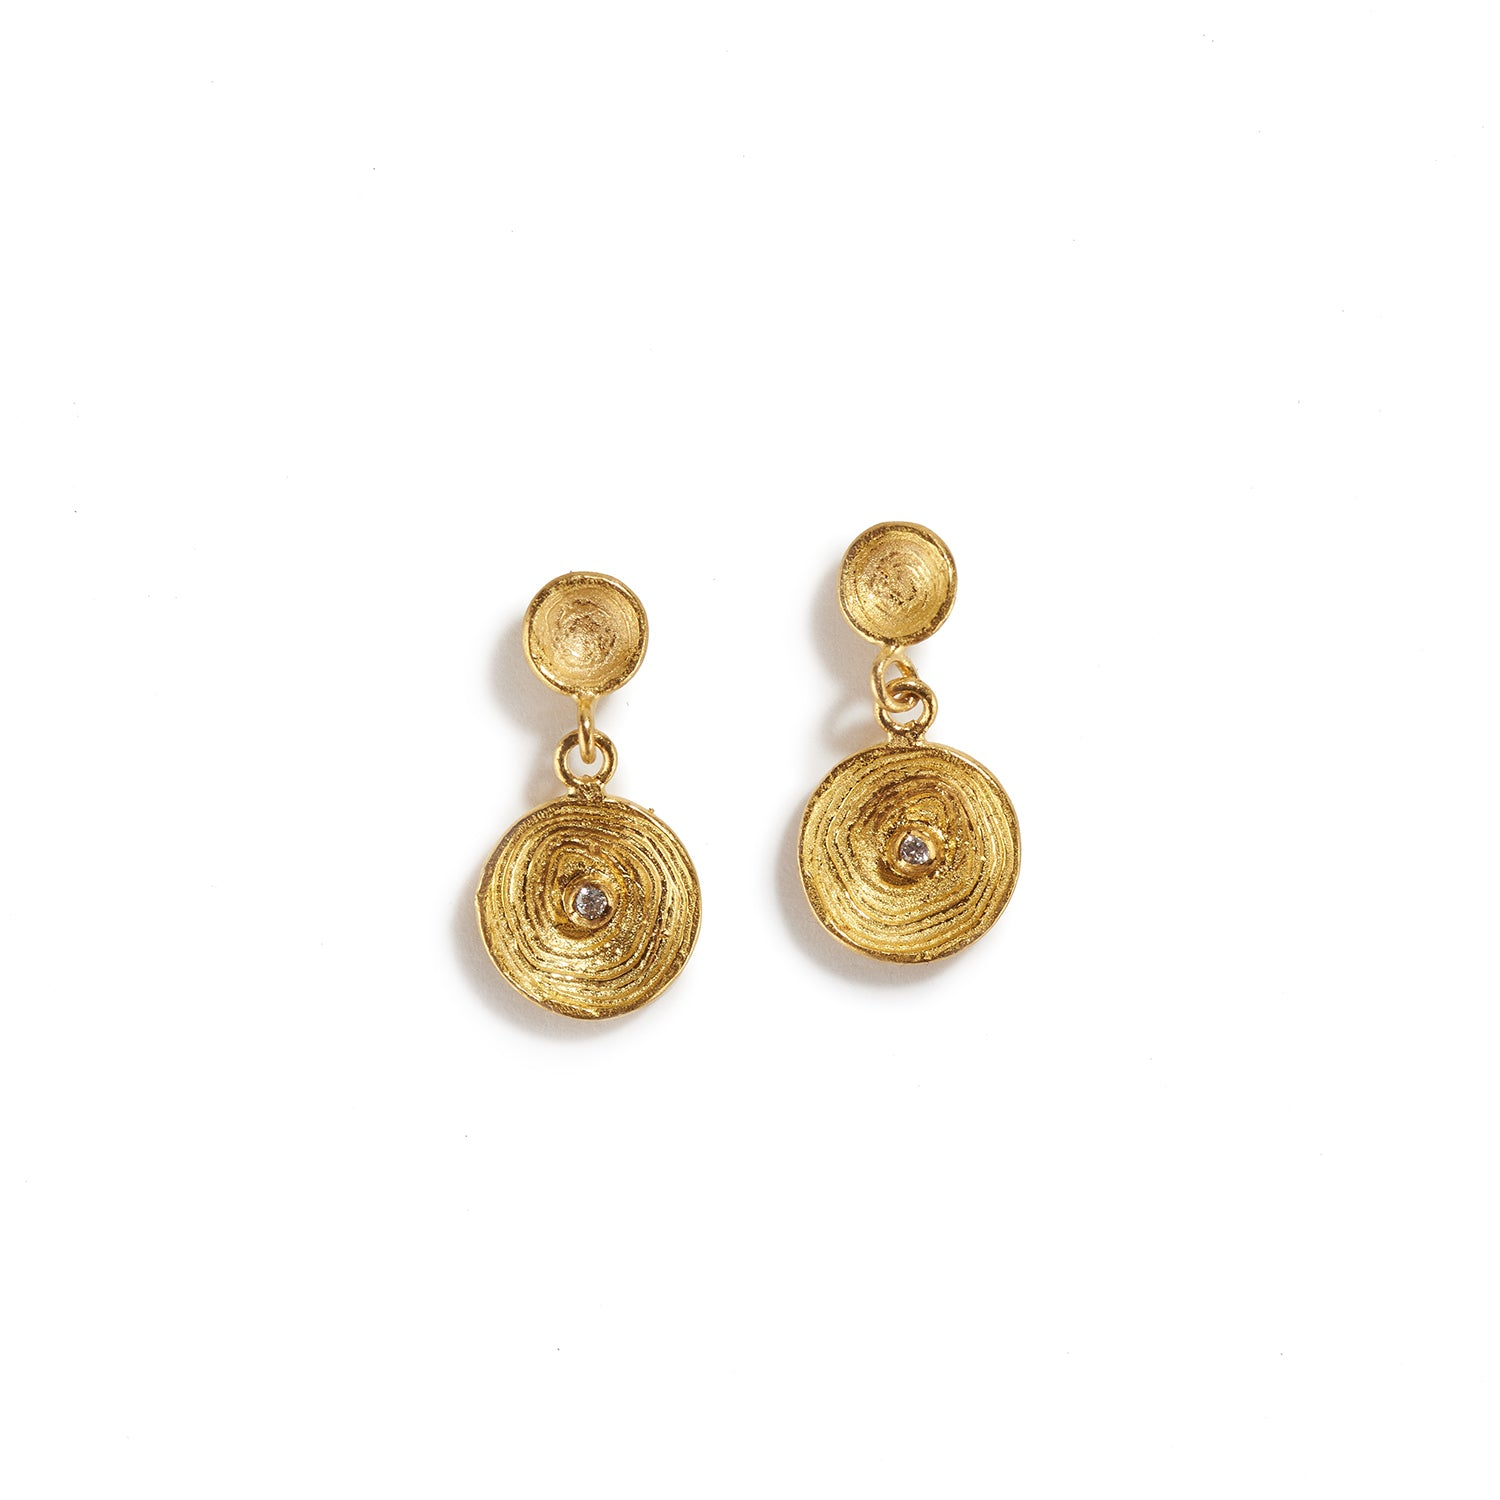 Small Cups of Gold Earrings